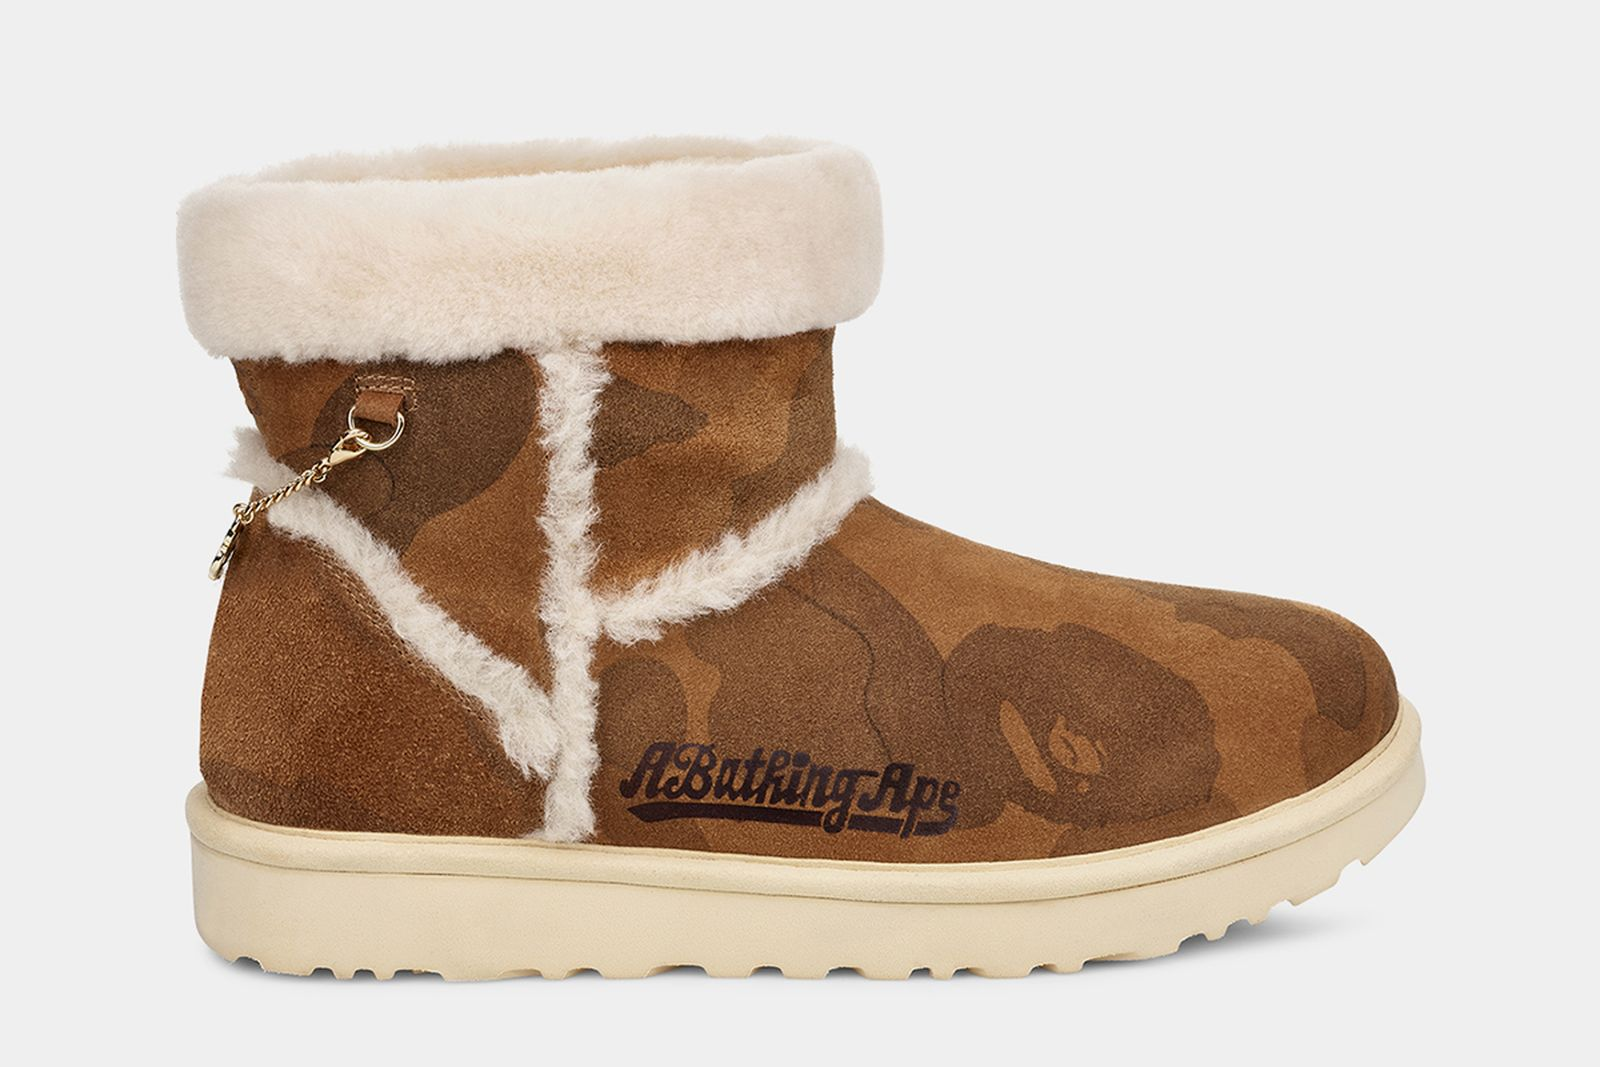 bape-ugg-fw19-release-date-price-01